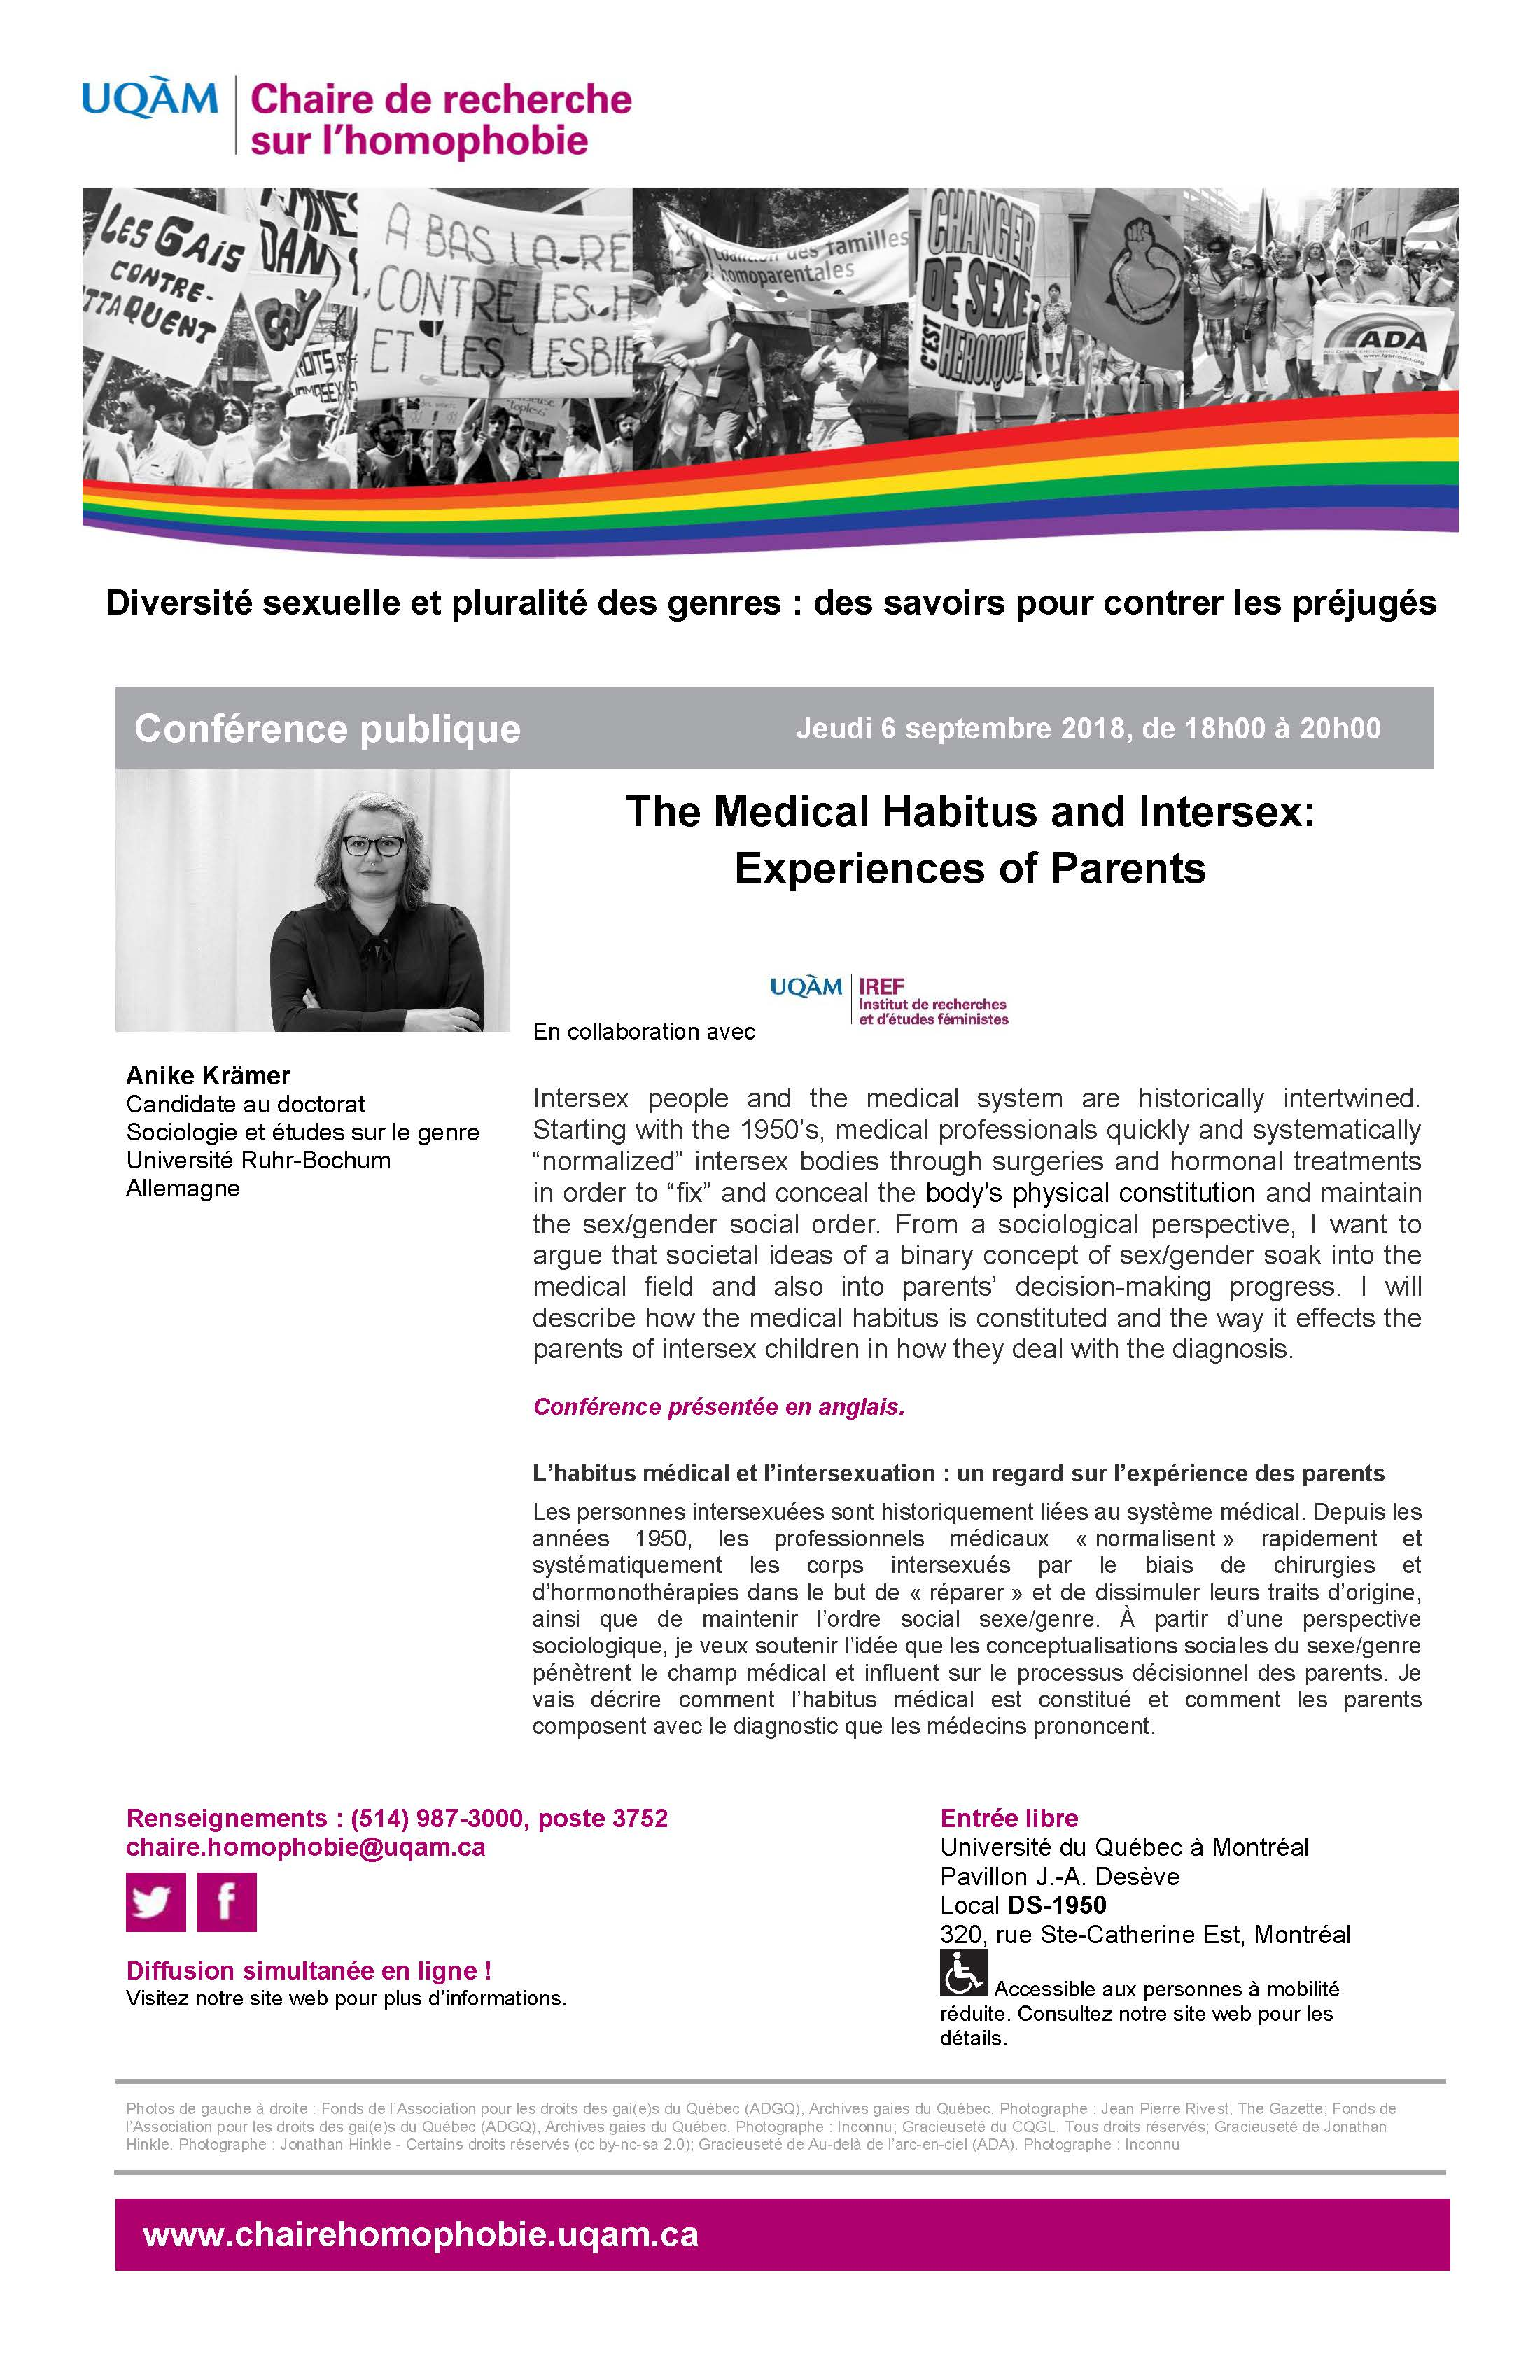 CONFÉRENCE PUBLIQUE | ''The Medical Habitus and Intersex: Experiences of Parents''